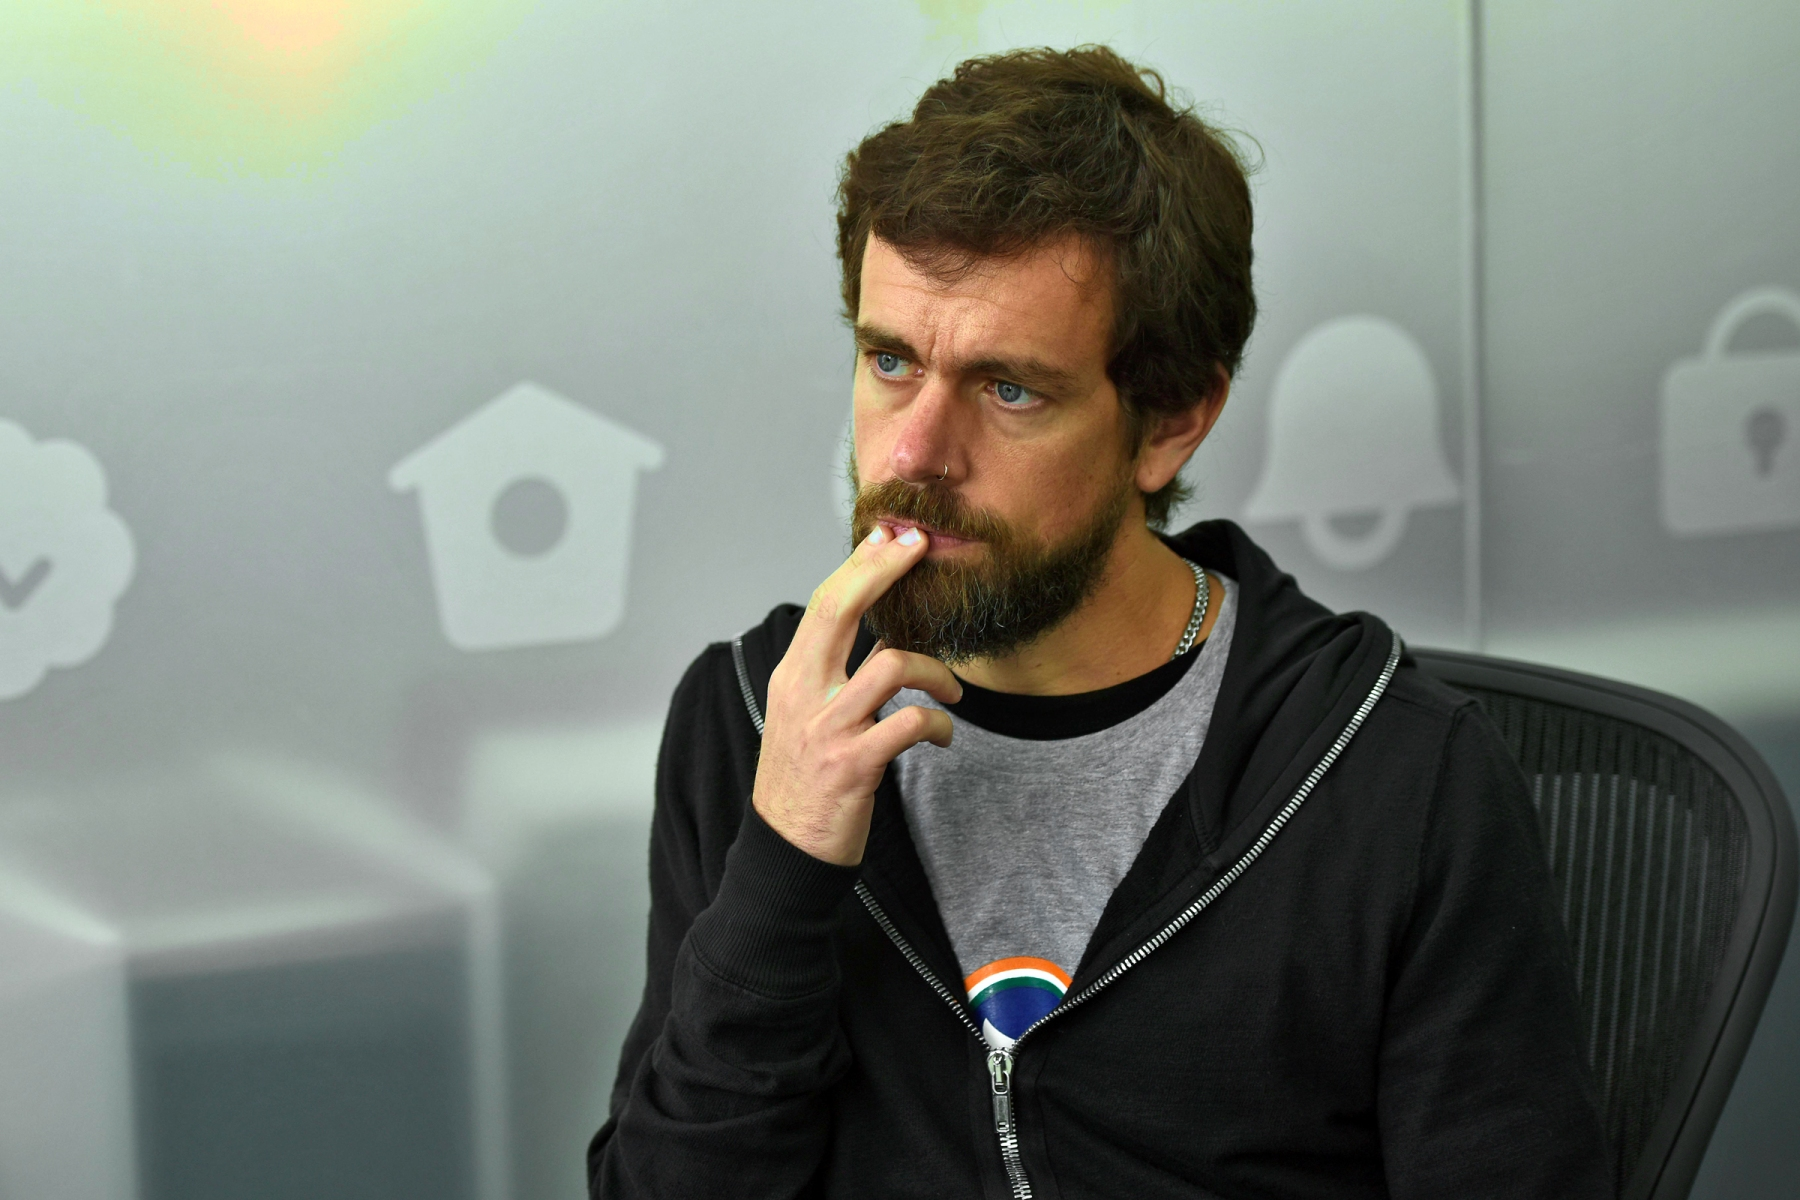 Jack Dorsey S Diet Why Intermittent Fasting Has Dangers Rolling Stone